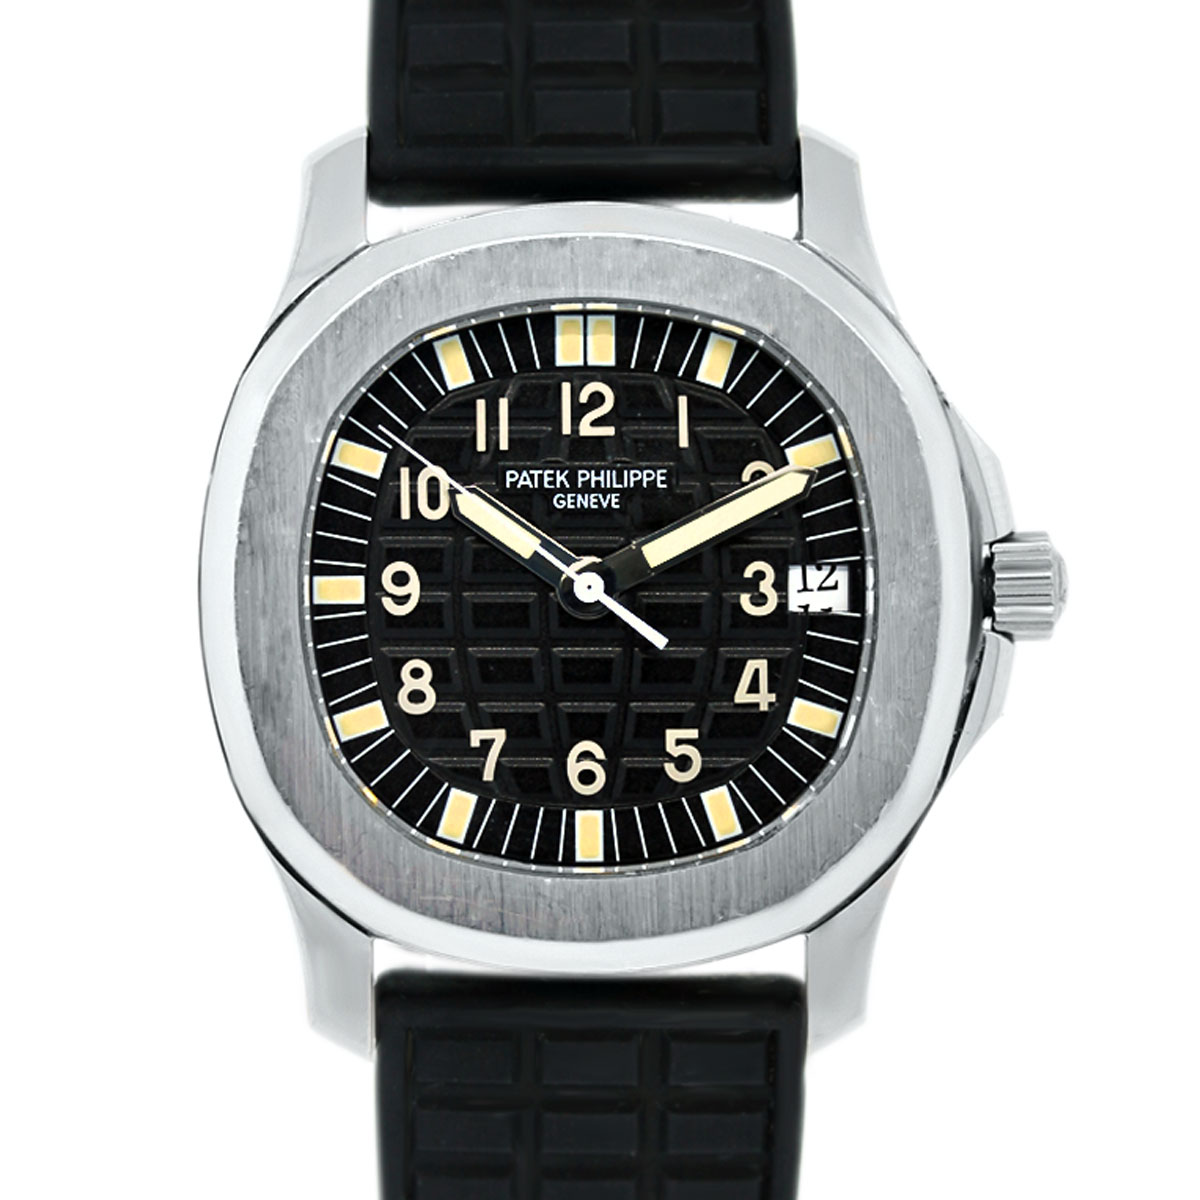 Patek Philippe First Generation 5060 Aquanaut Mens Watch